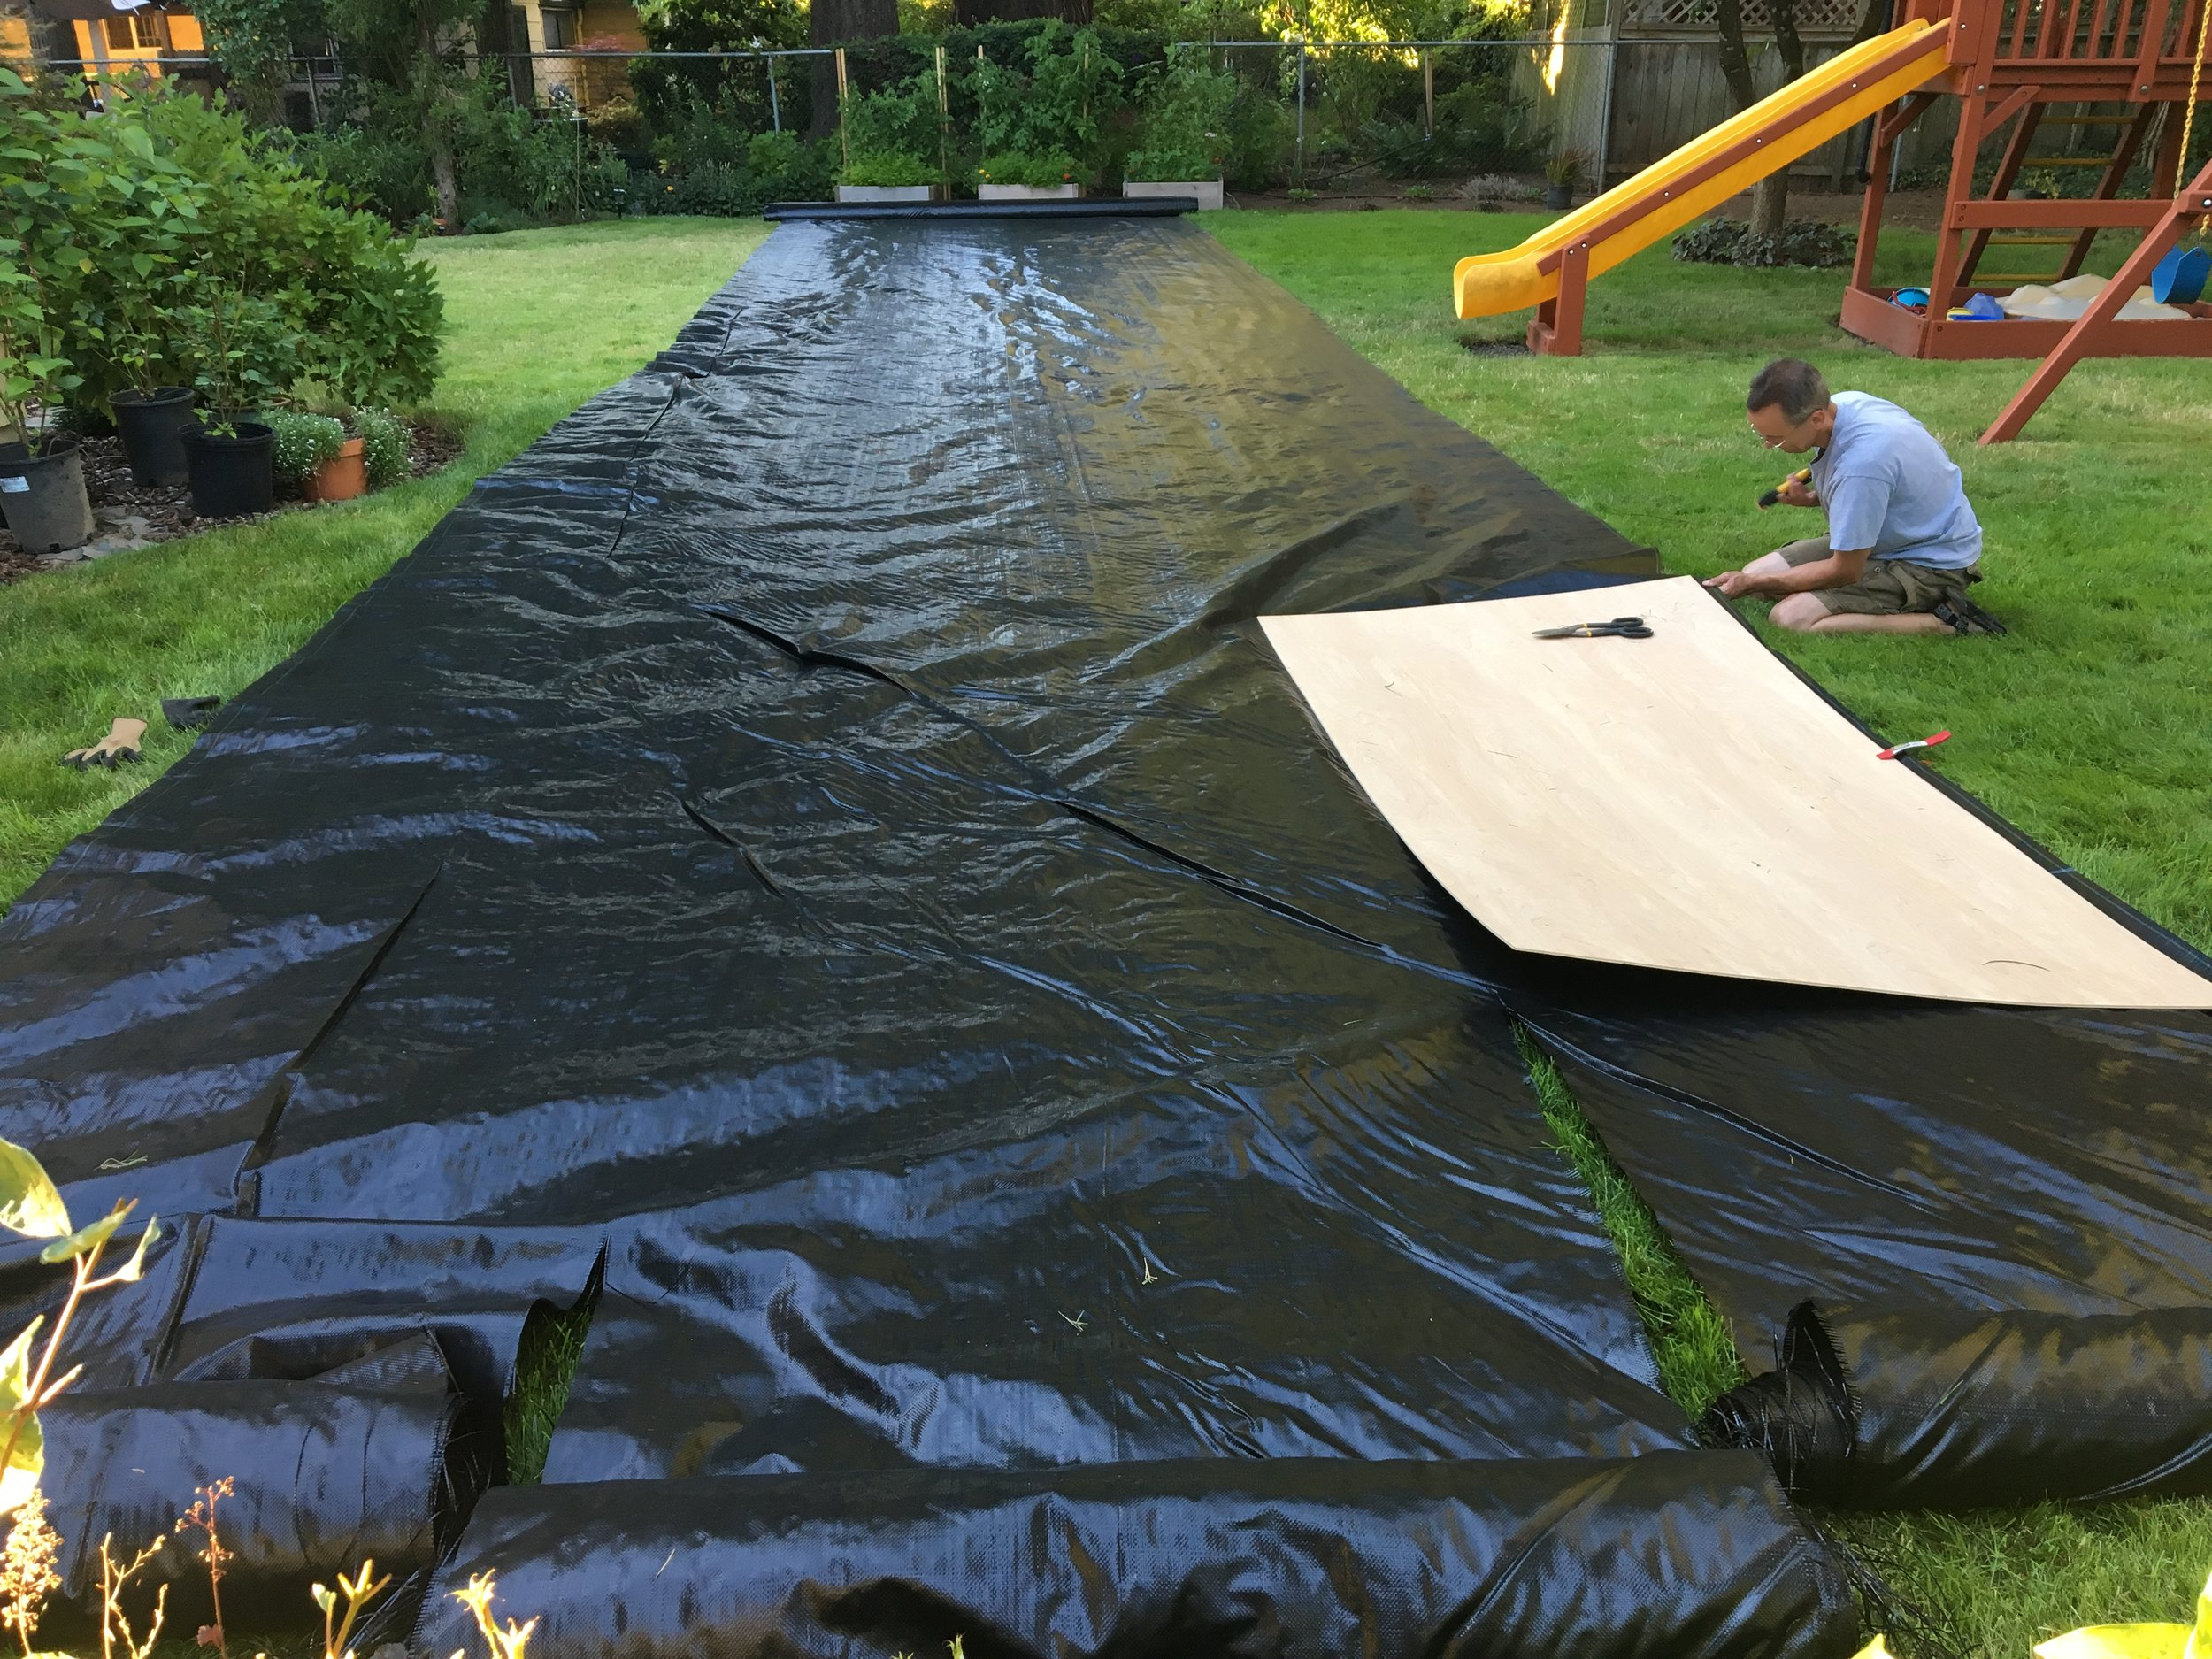 Dave measuring & cutting geotextile fabric